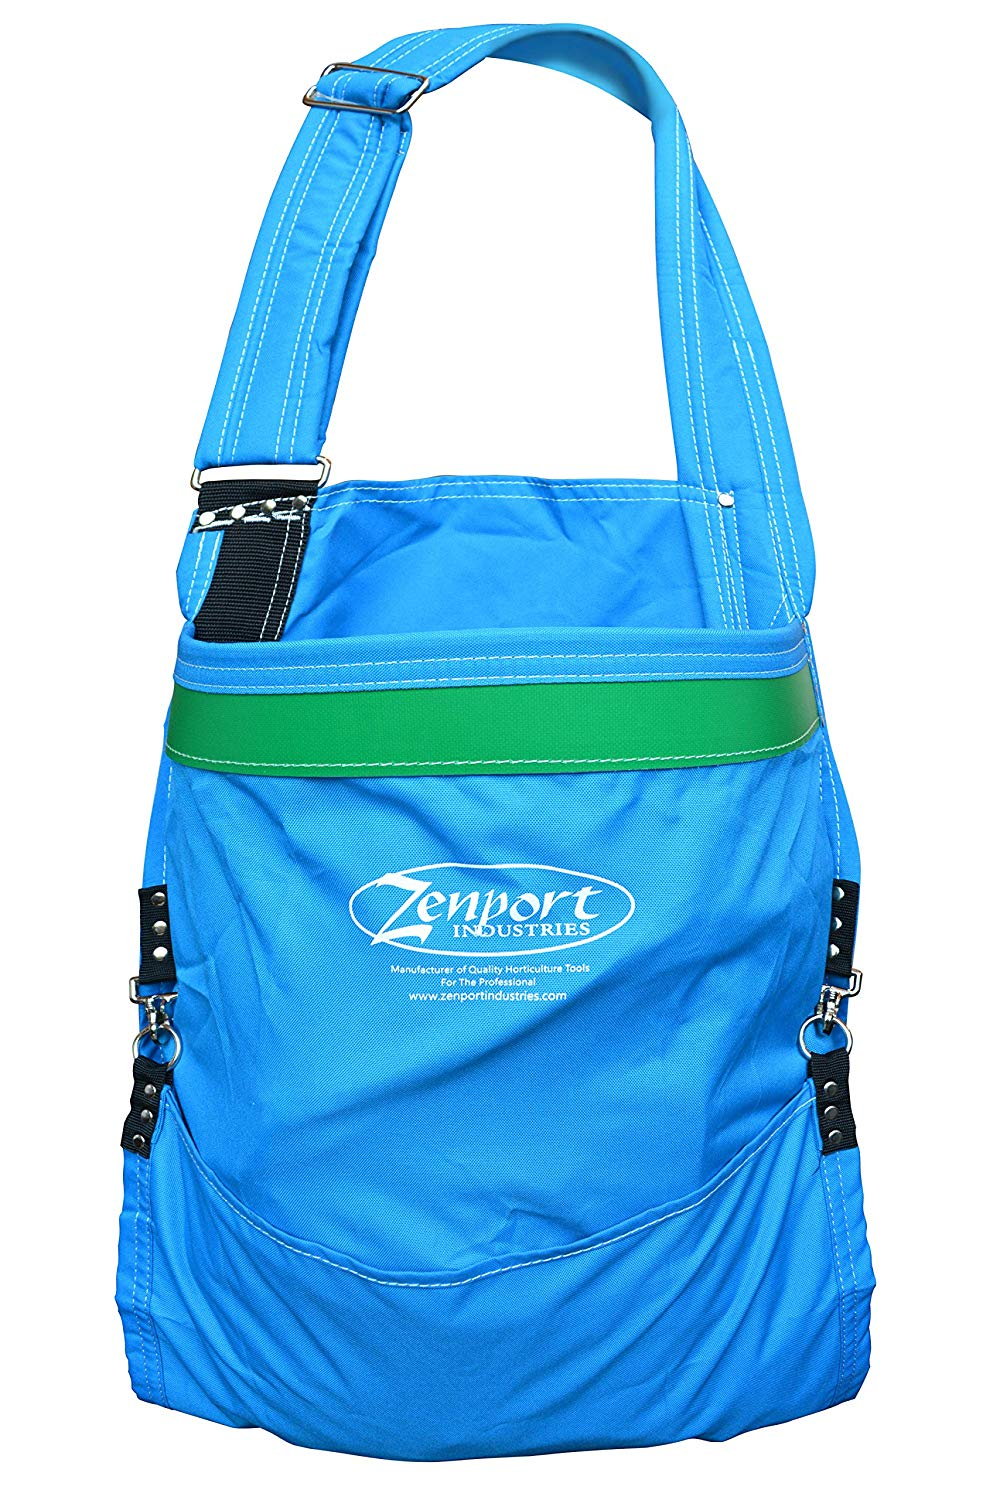 Zenport Picking Bag AG413 AgriKon 80-Pound Sling Soft Shell Harvest Fruit Pear/Apple Picking Bag